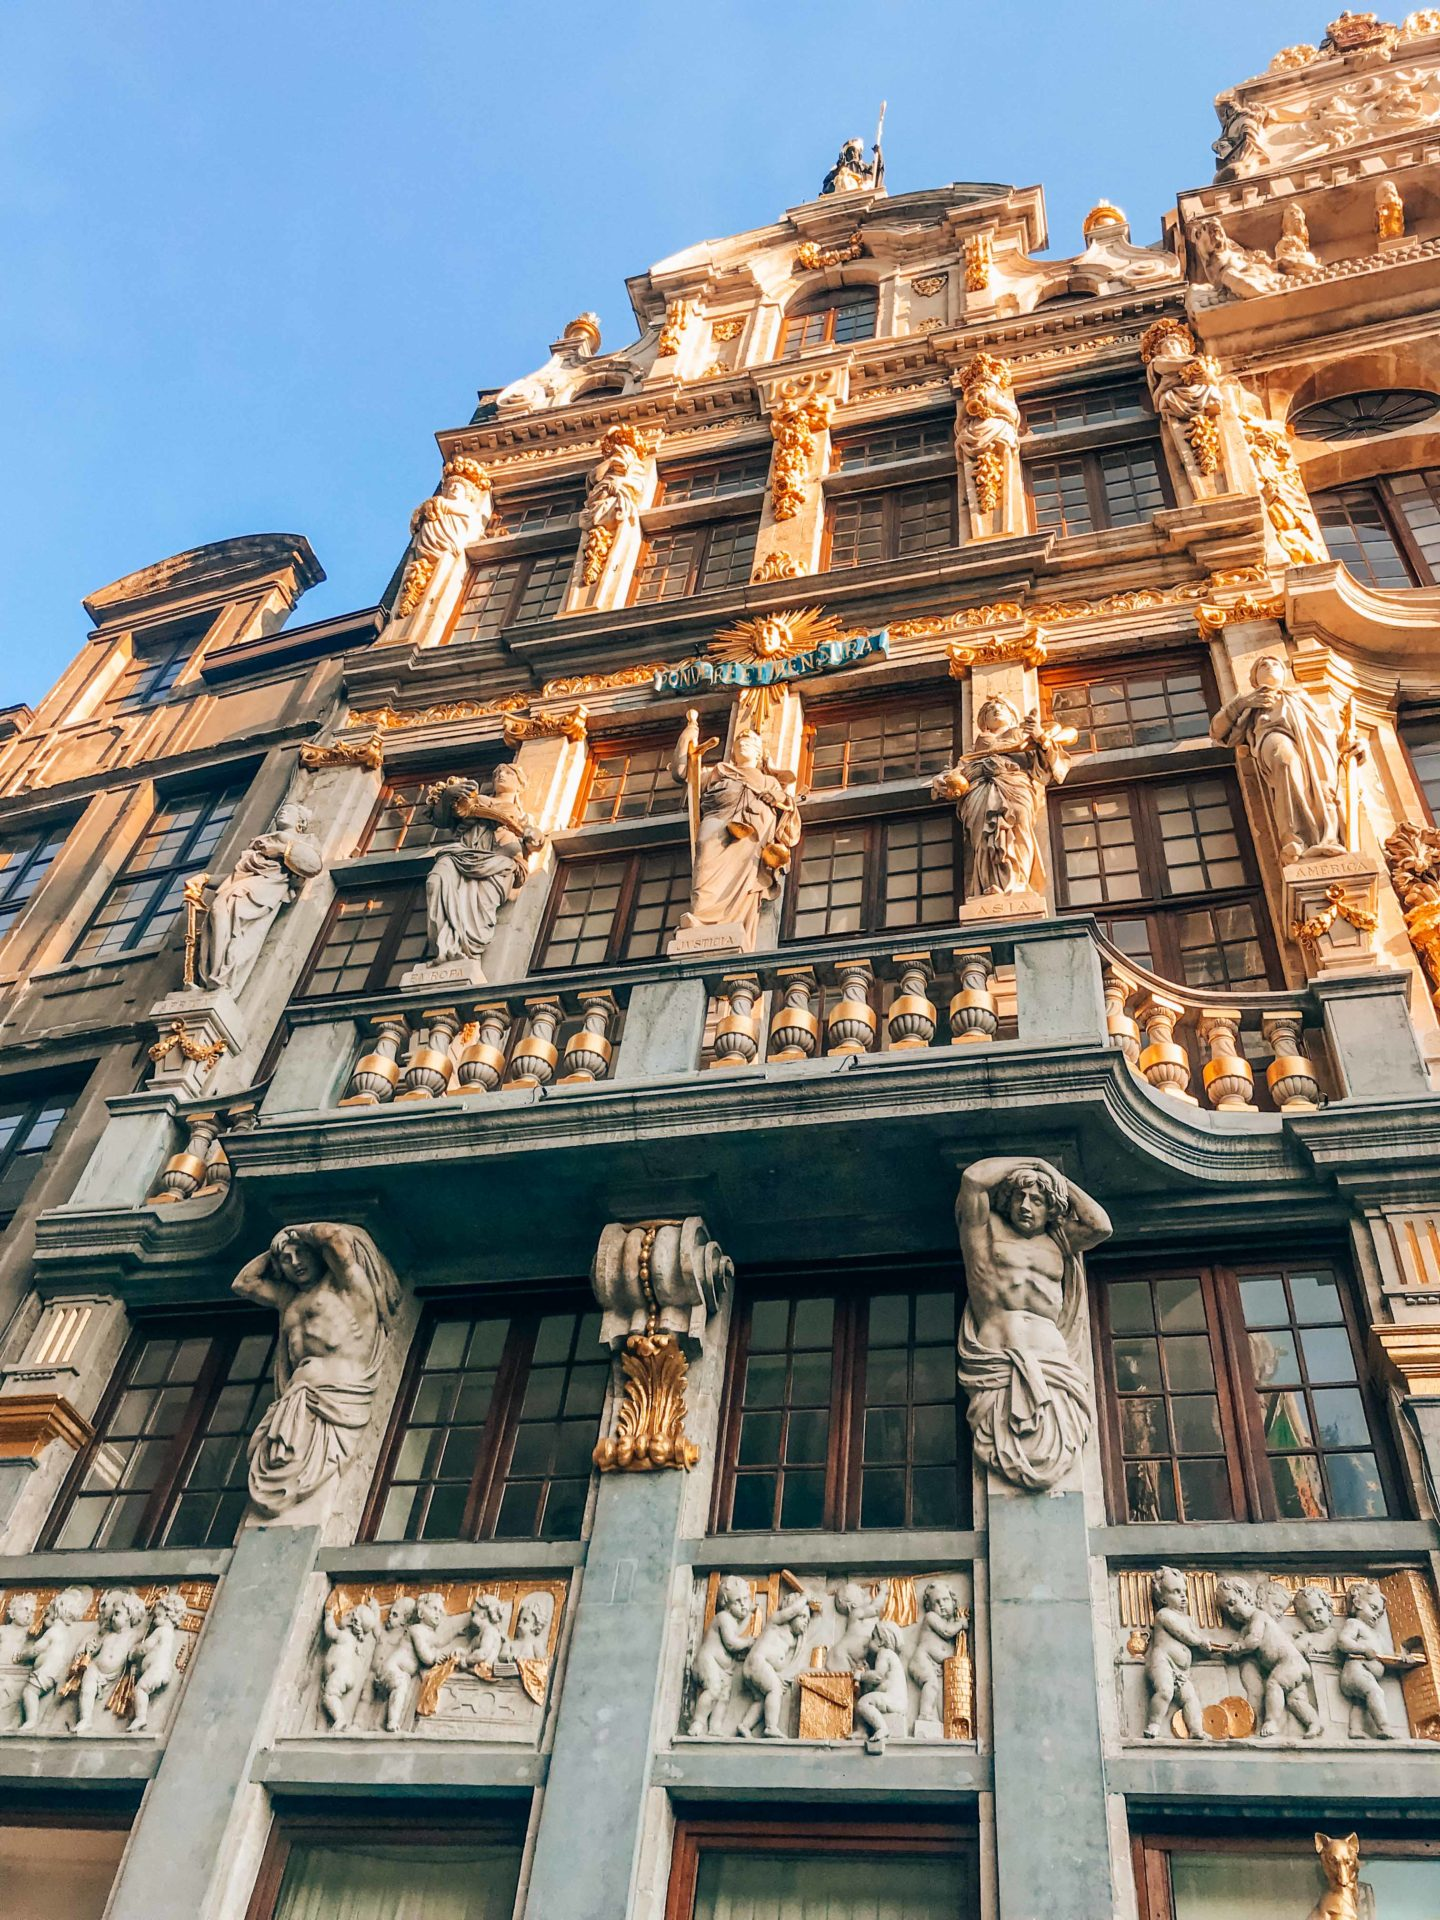 Golden details on the Grand Place buildings